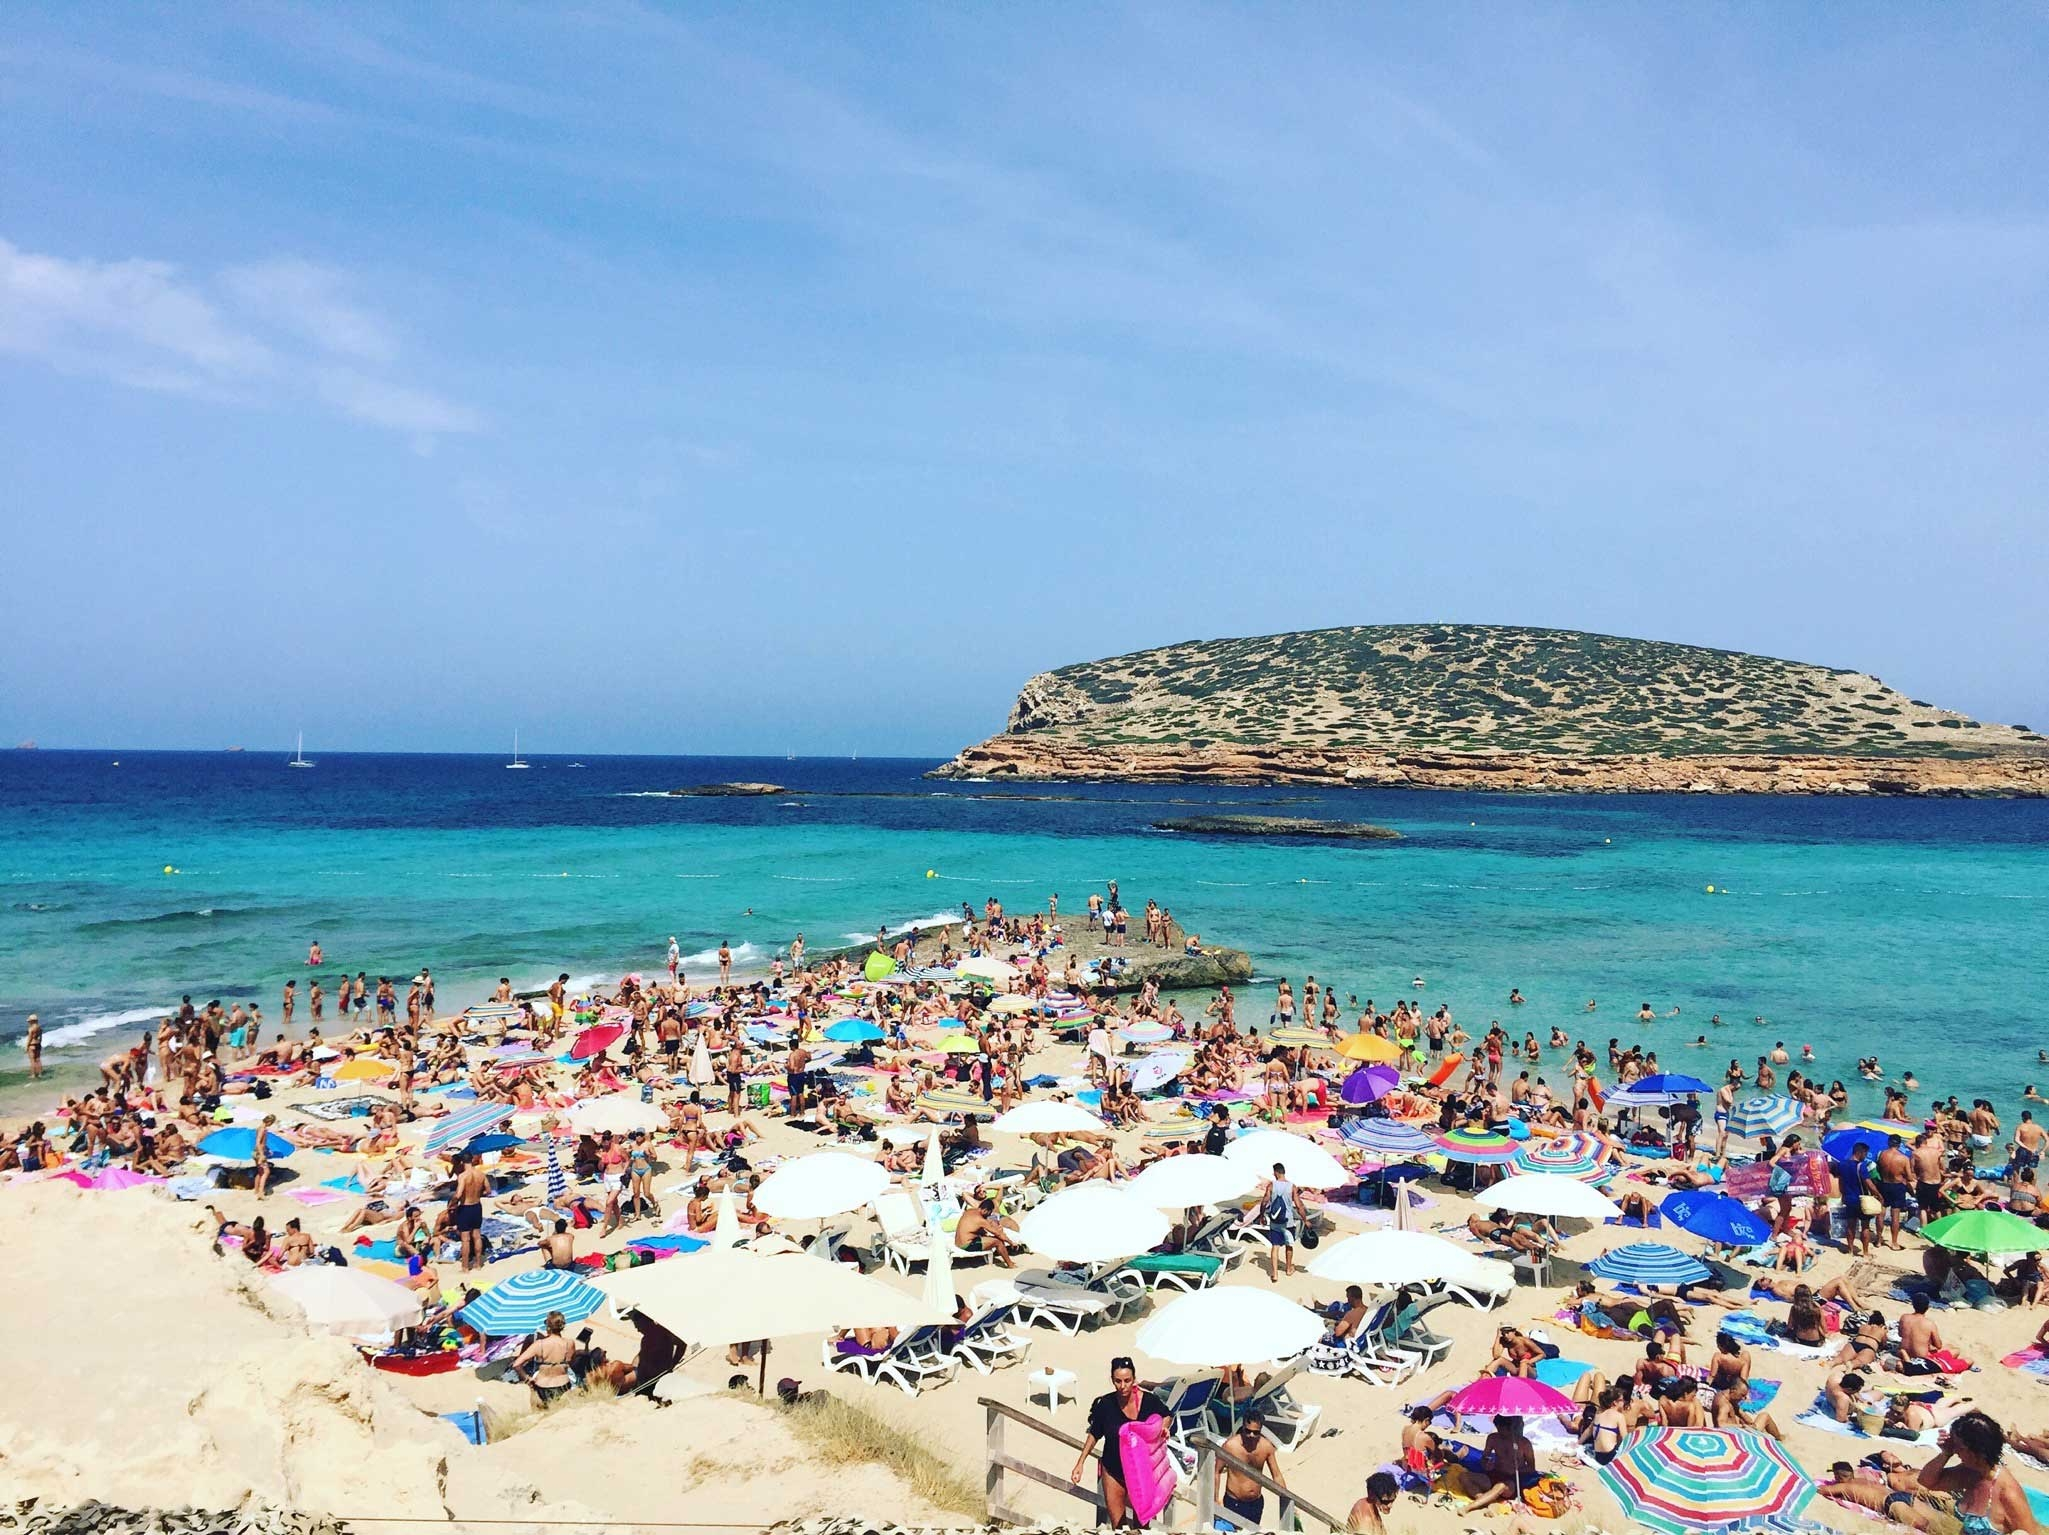 Cala Conta filled with beachgoers enjoying the clear skies and turquoise ocean